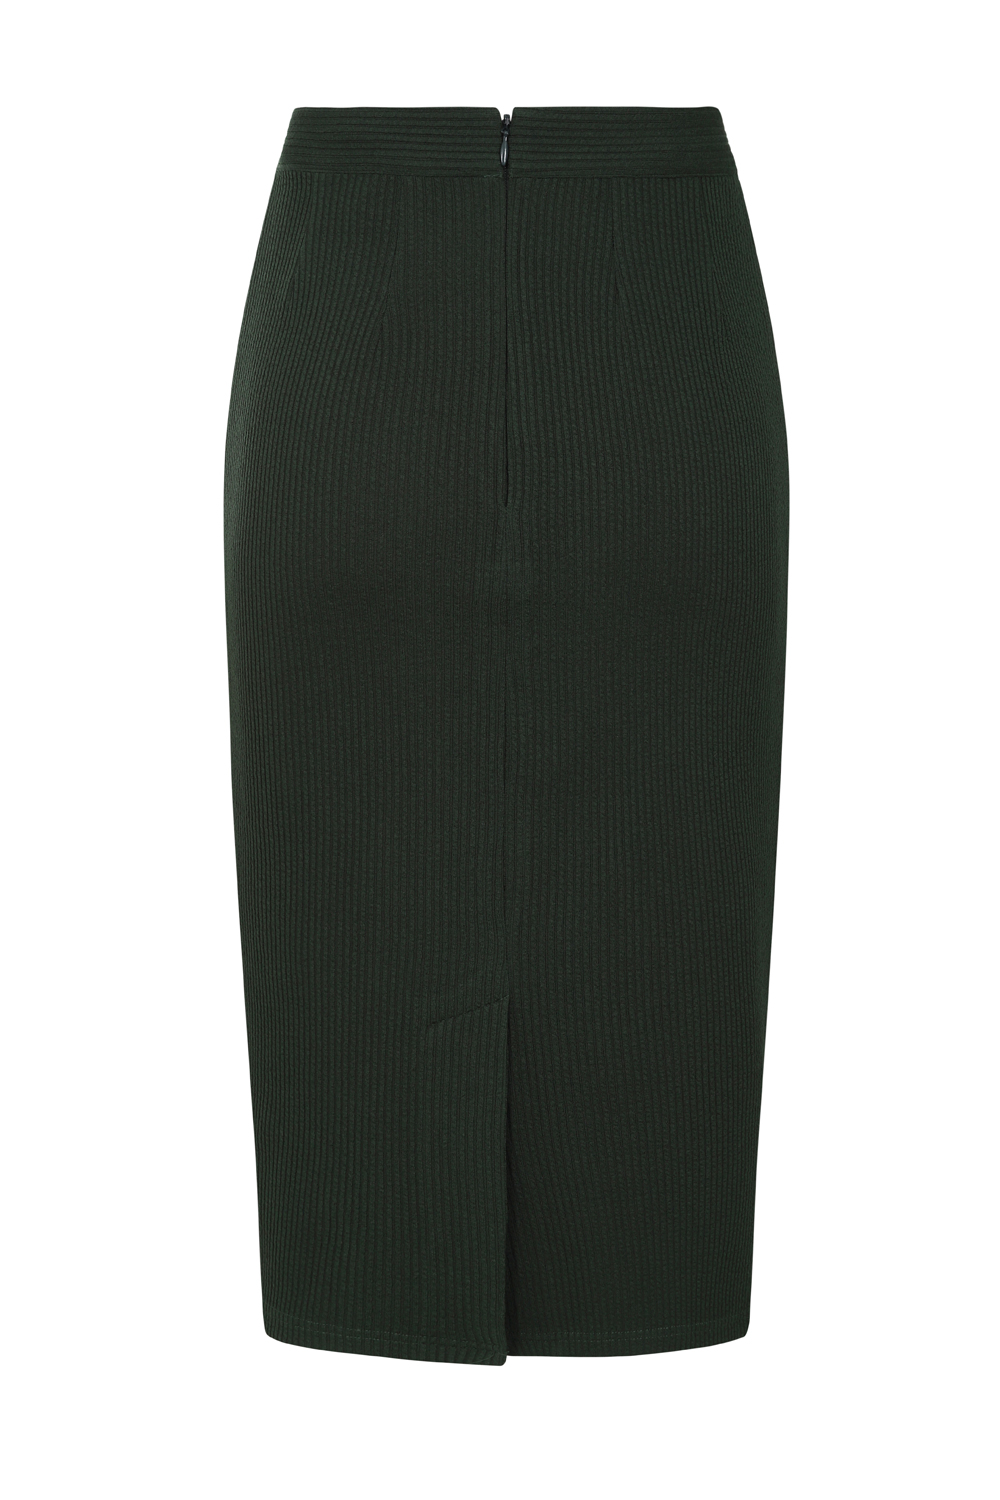 Sally Knitted Skirt in Green